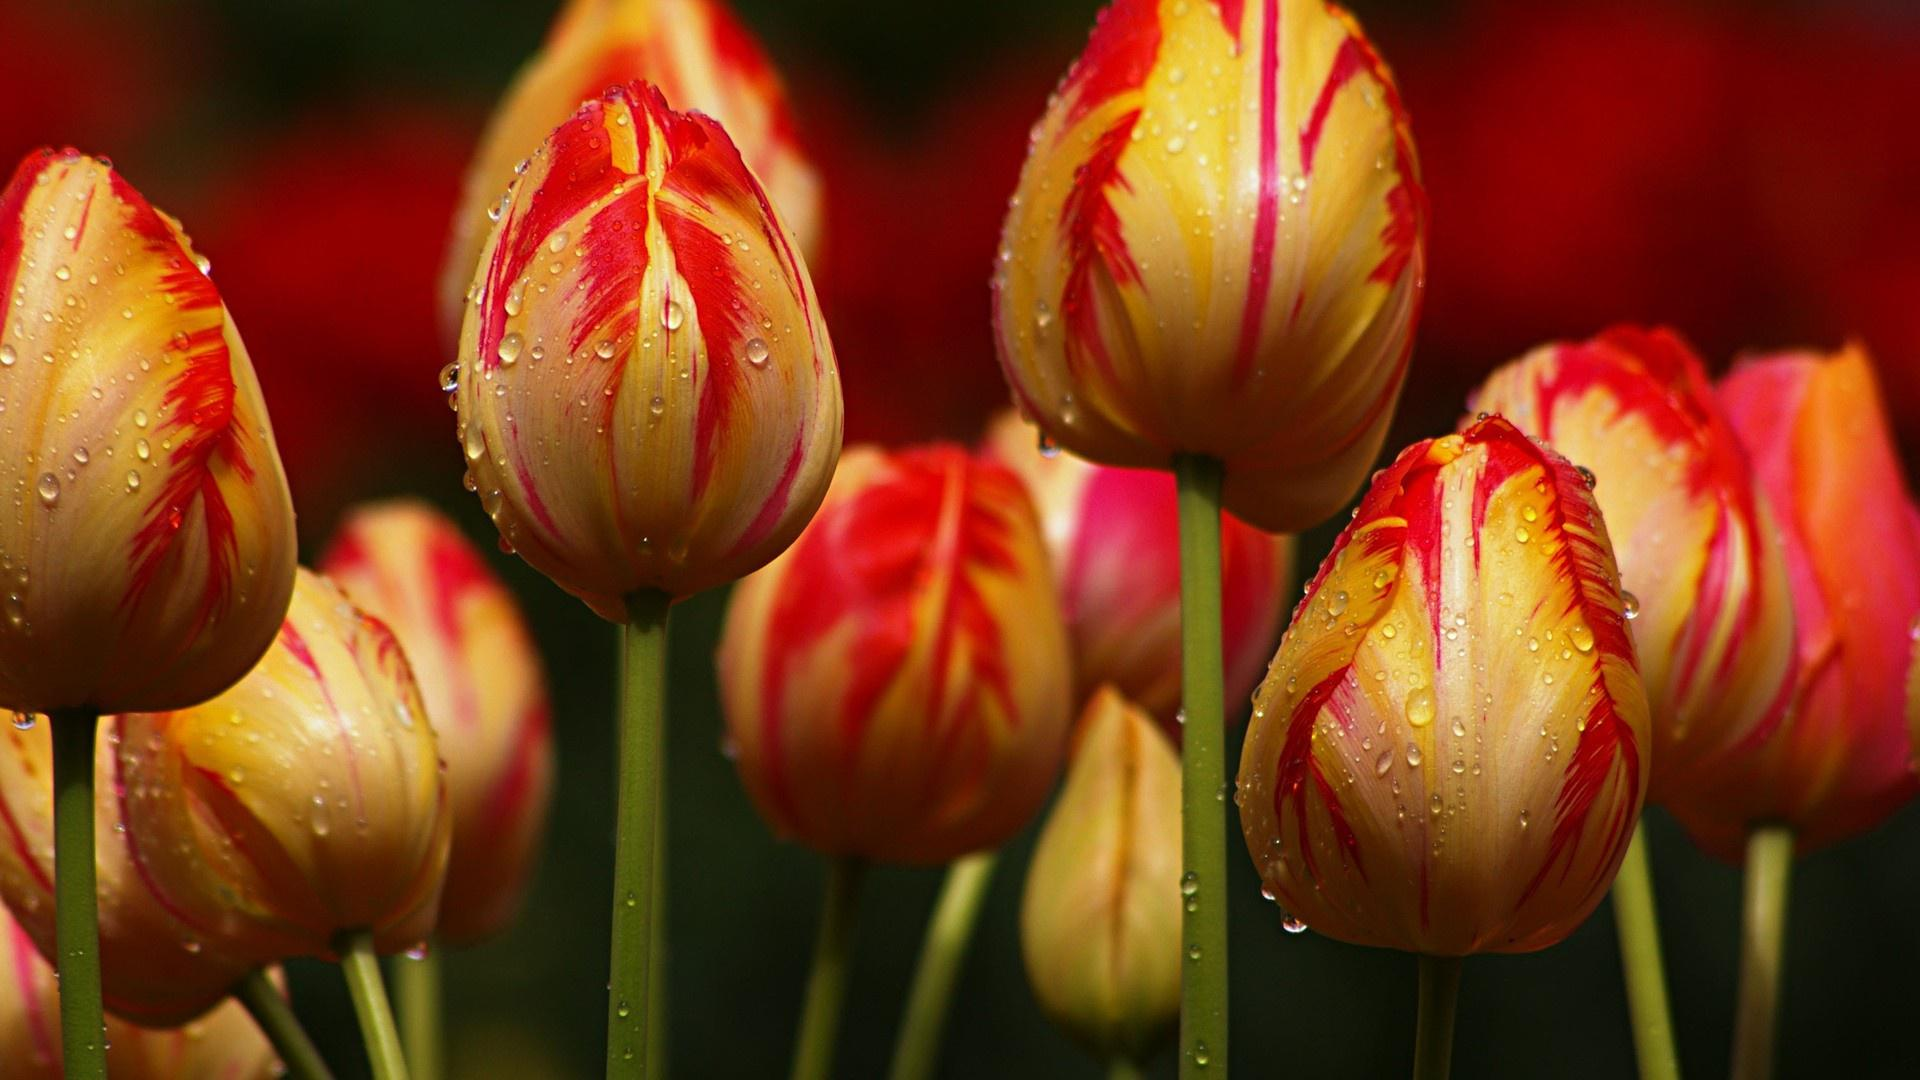 Red striped yellow tulips HQ WALLPAPER - (#161079)